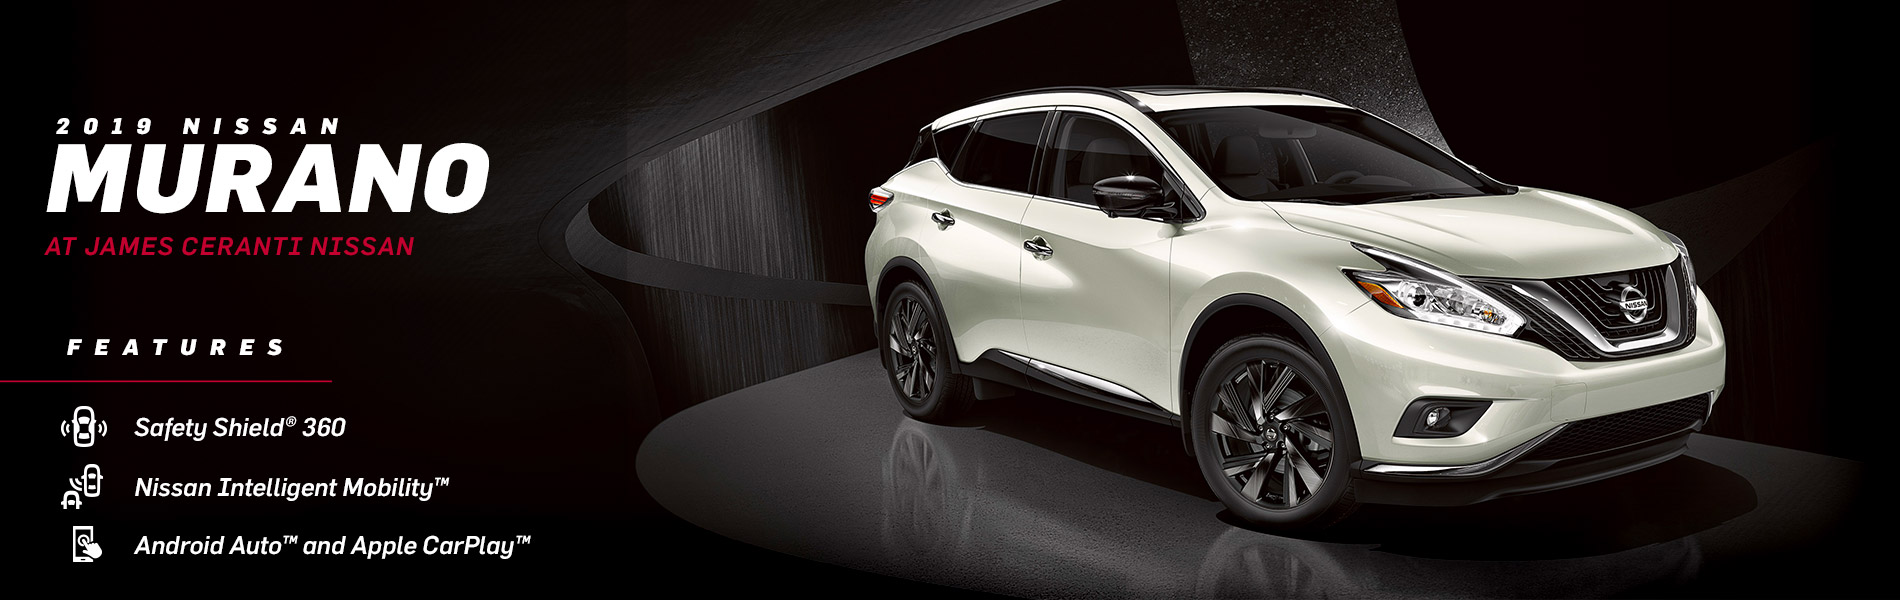 2019 Nissan Murano | James Ceranti Nissan | Greenville, MS